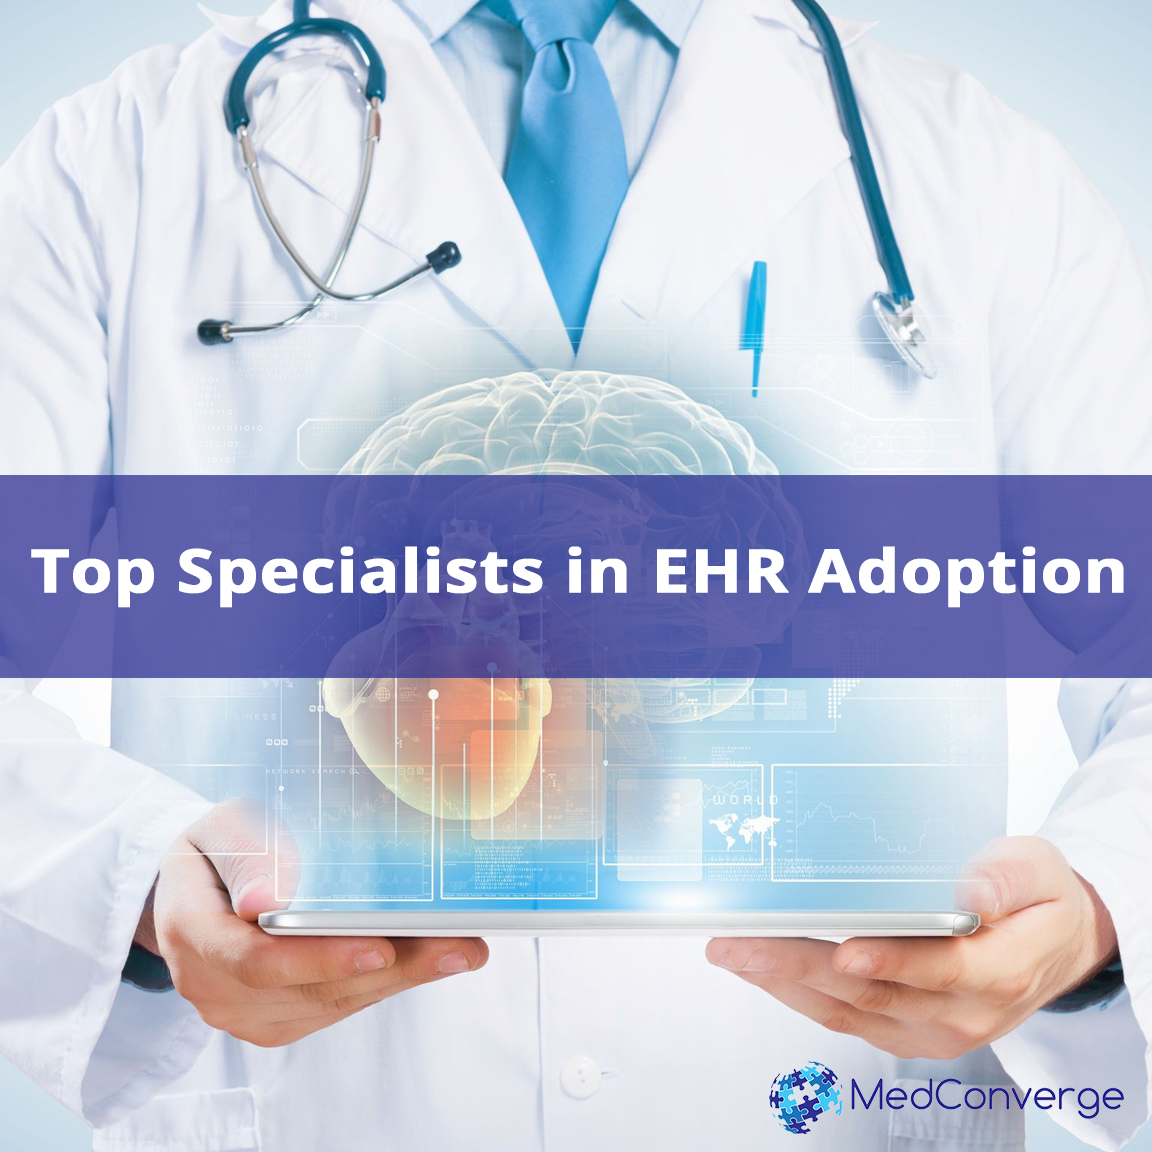 EHR Adoption Cardiologists